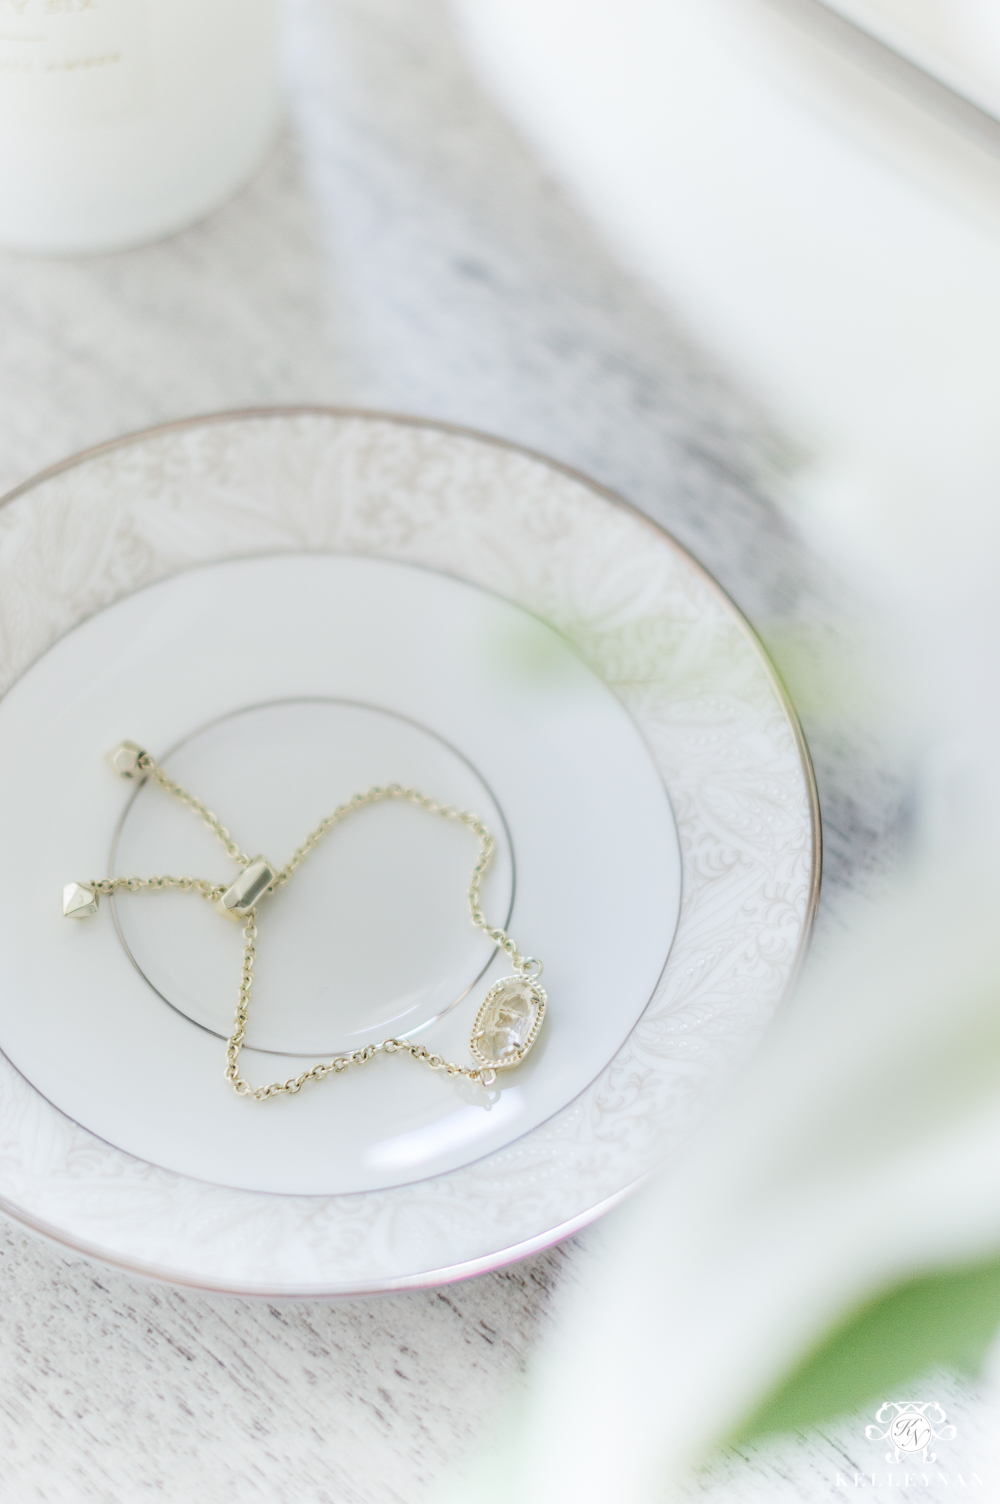 Dainty gold bracelet from Kendray Scott- Weekly favorites